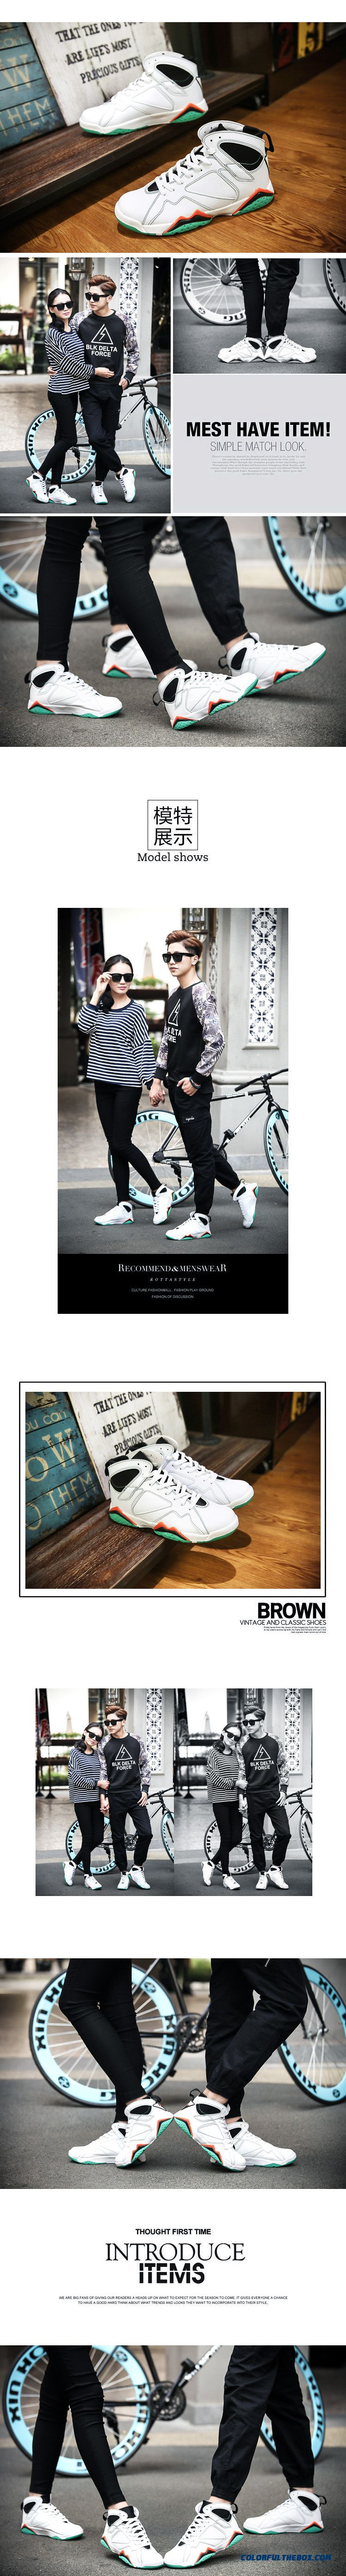 Couple's Shoes Comfortable And Breathable Men Basketball Shoes - detail images